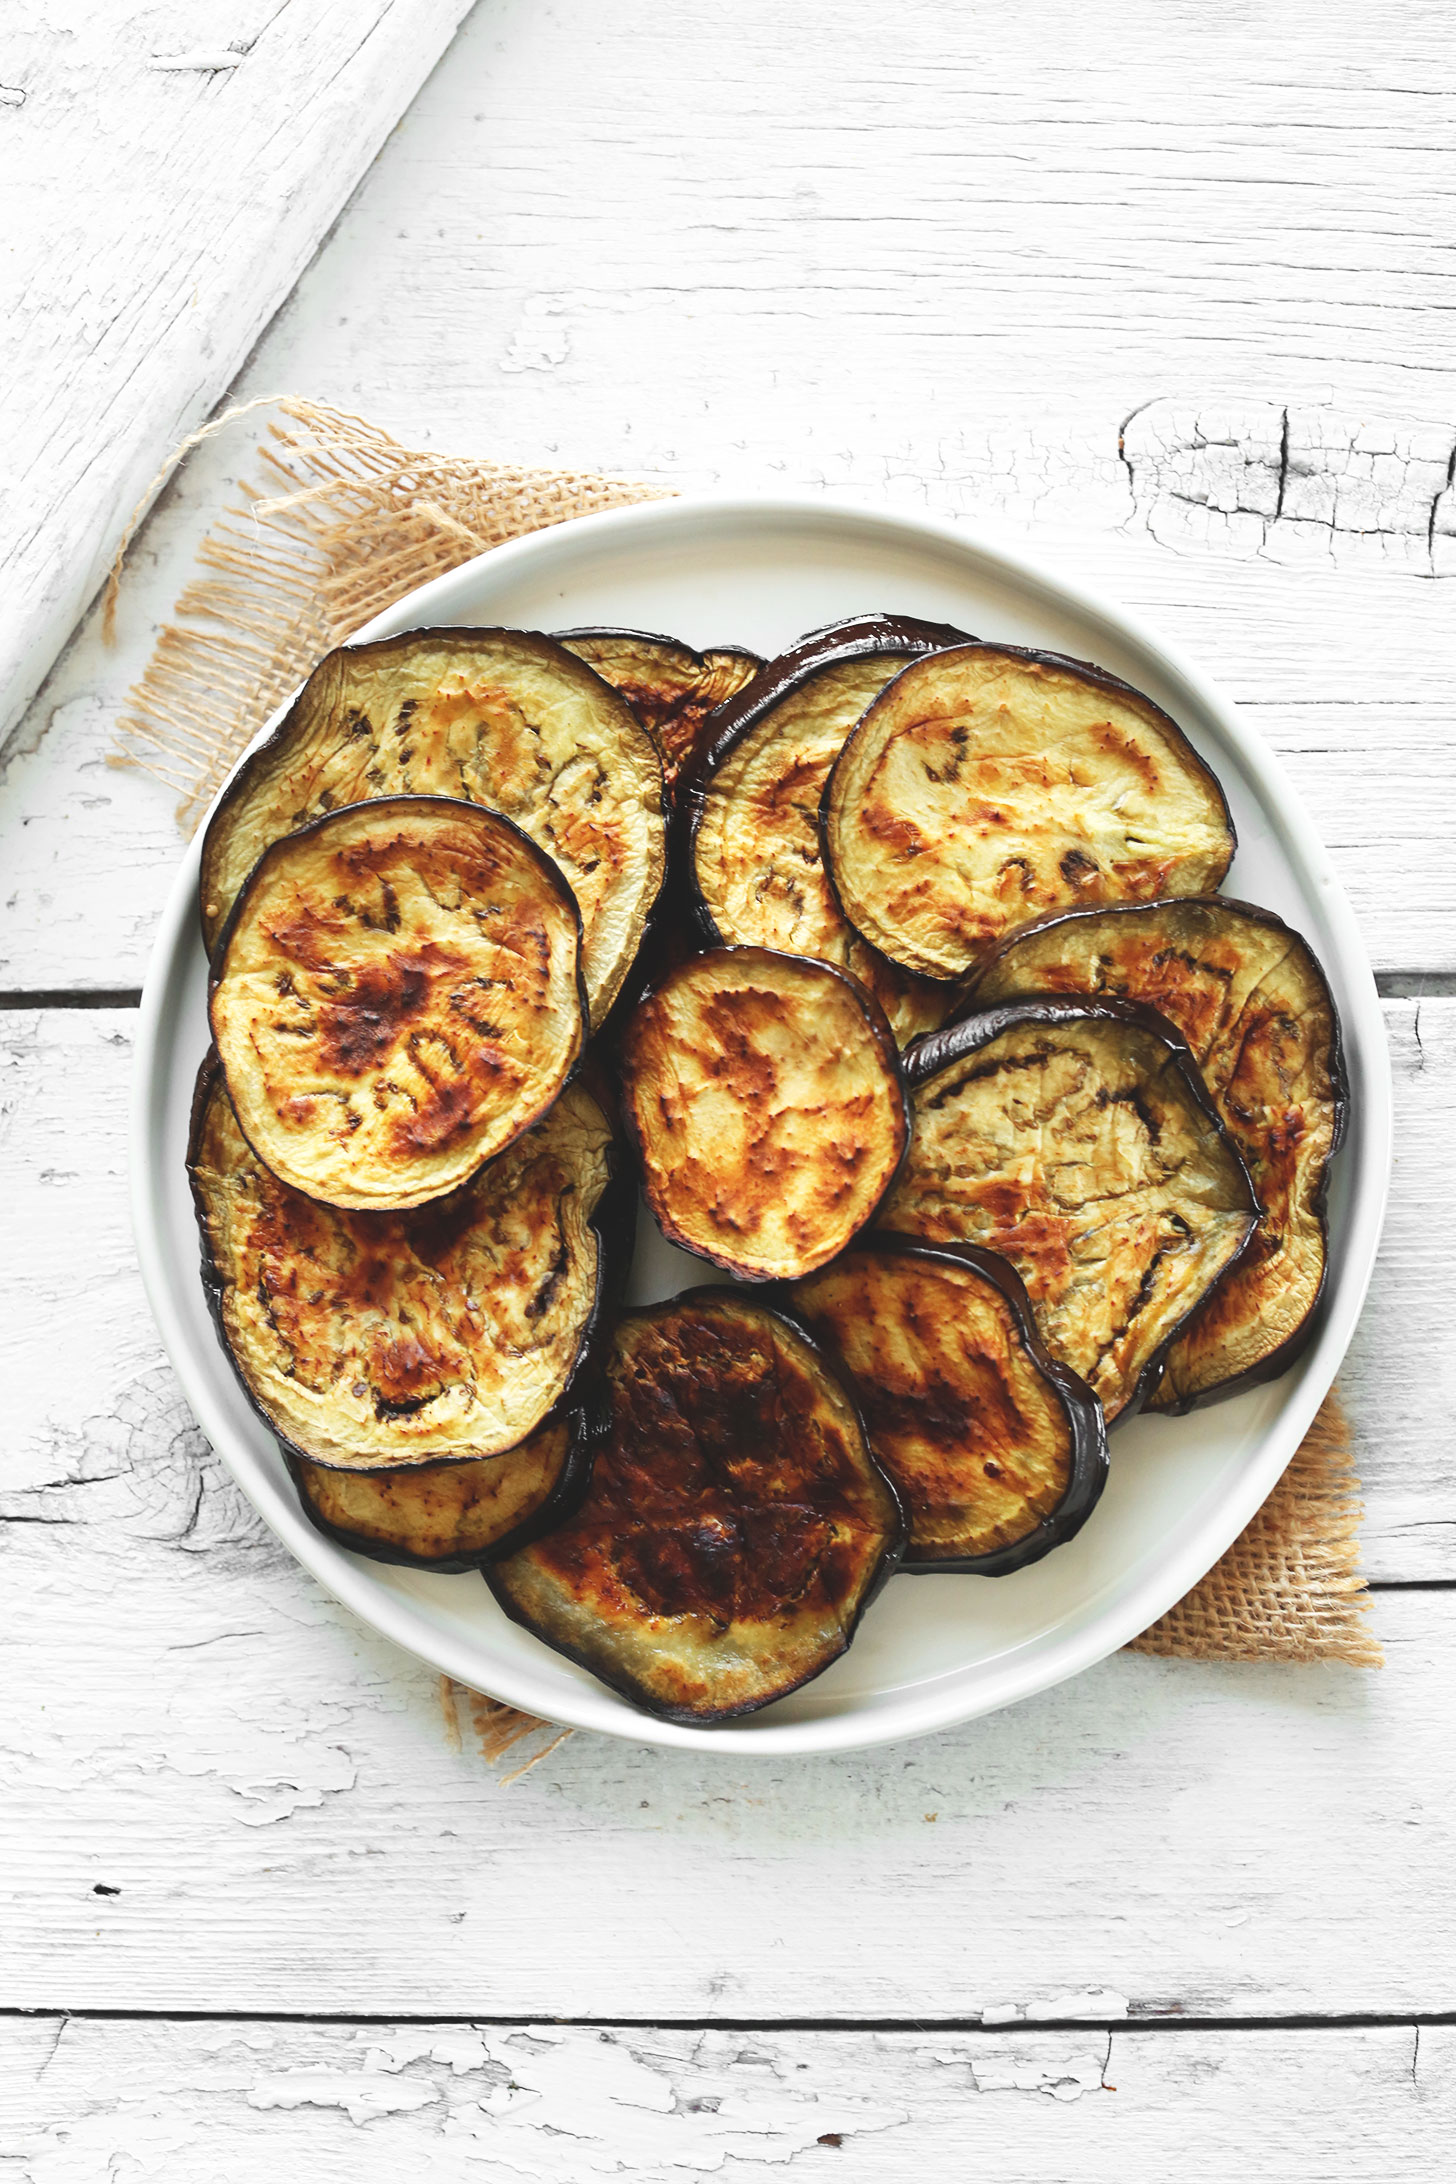 Freshly roasted eggplant slices for our homemade Smoky Harissa Eggplant Dip